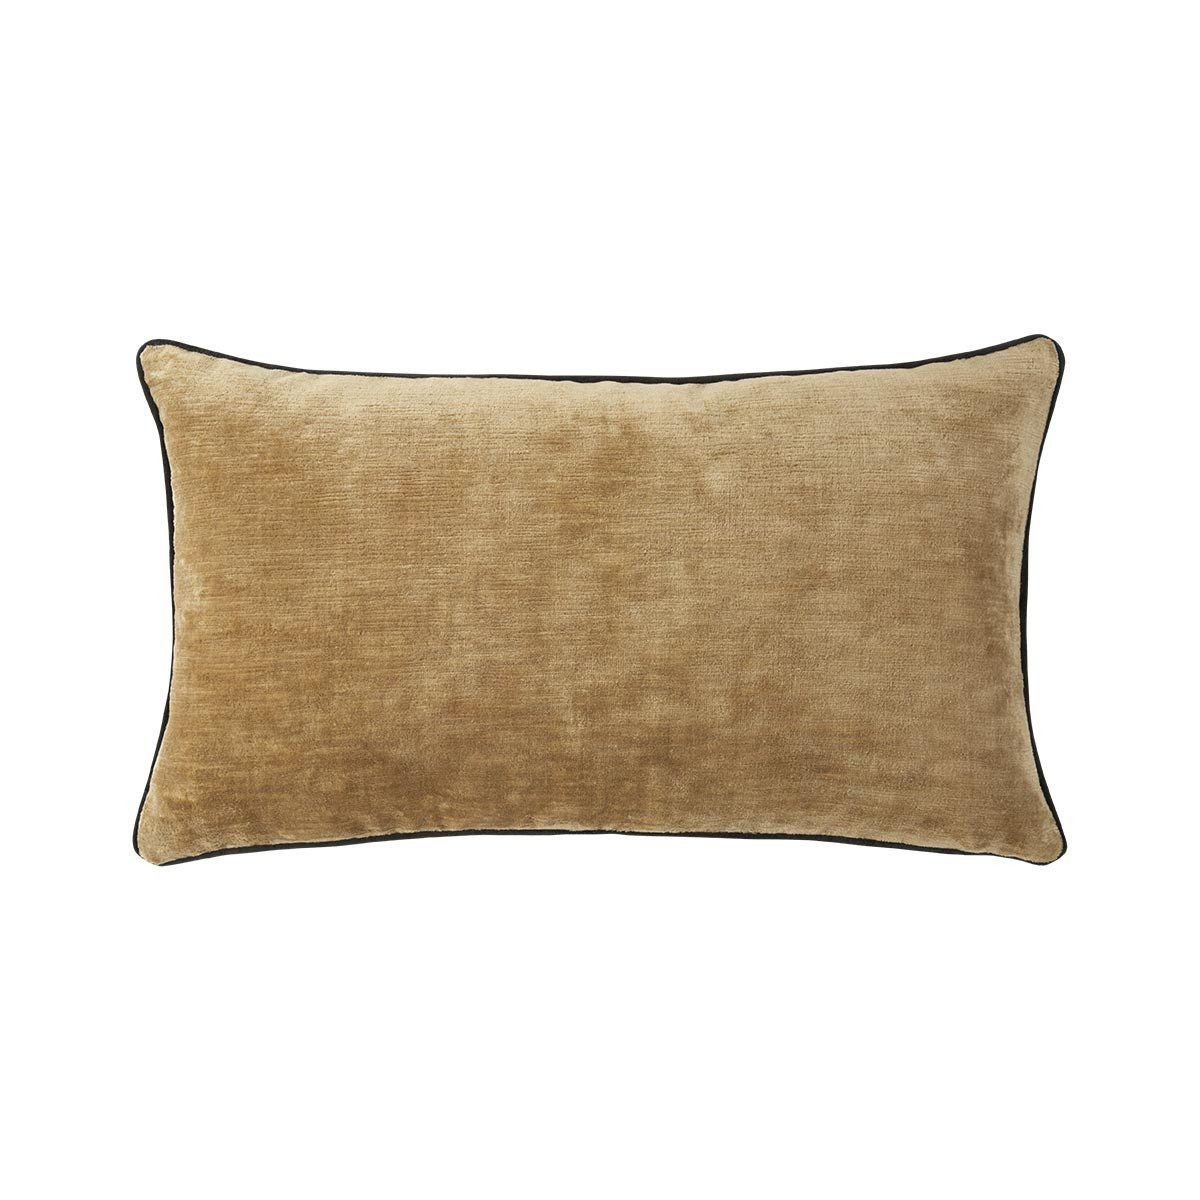 Boromee Daim Lumbar Pillow by Iosis